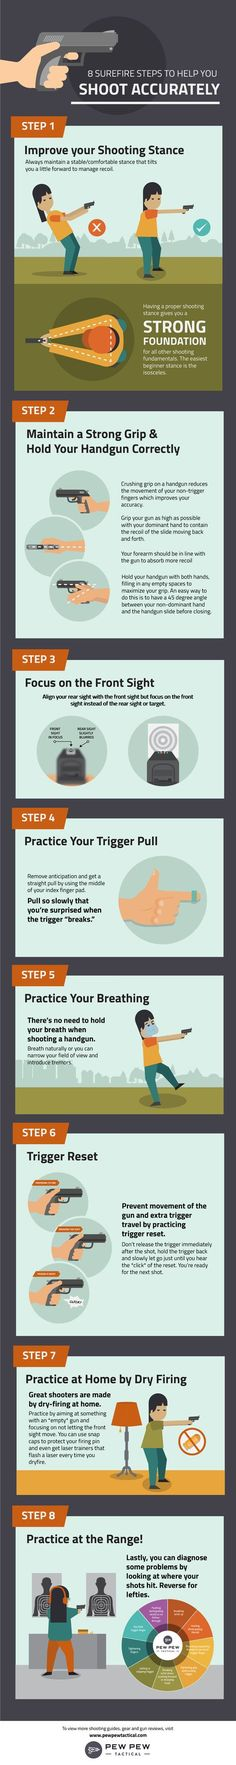 Practice these simple 8 step training guide and you'll be sure to hit the bullseye every time!